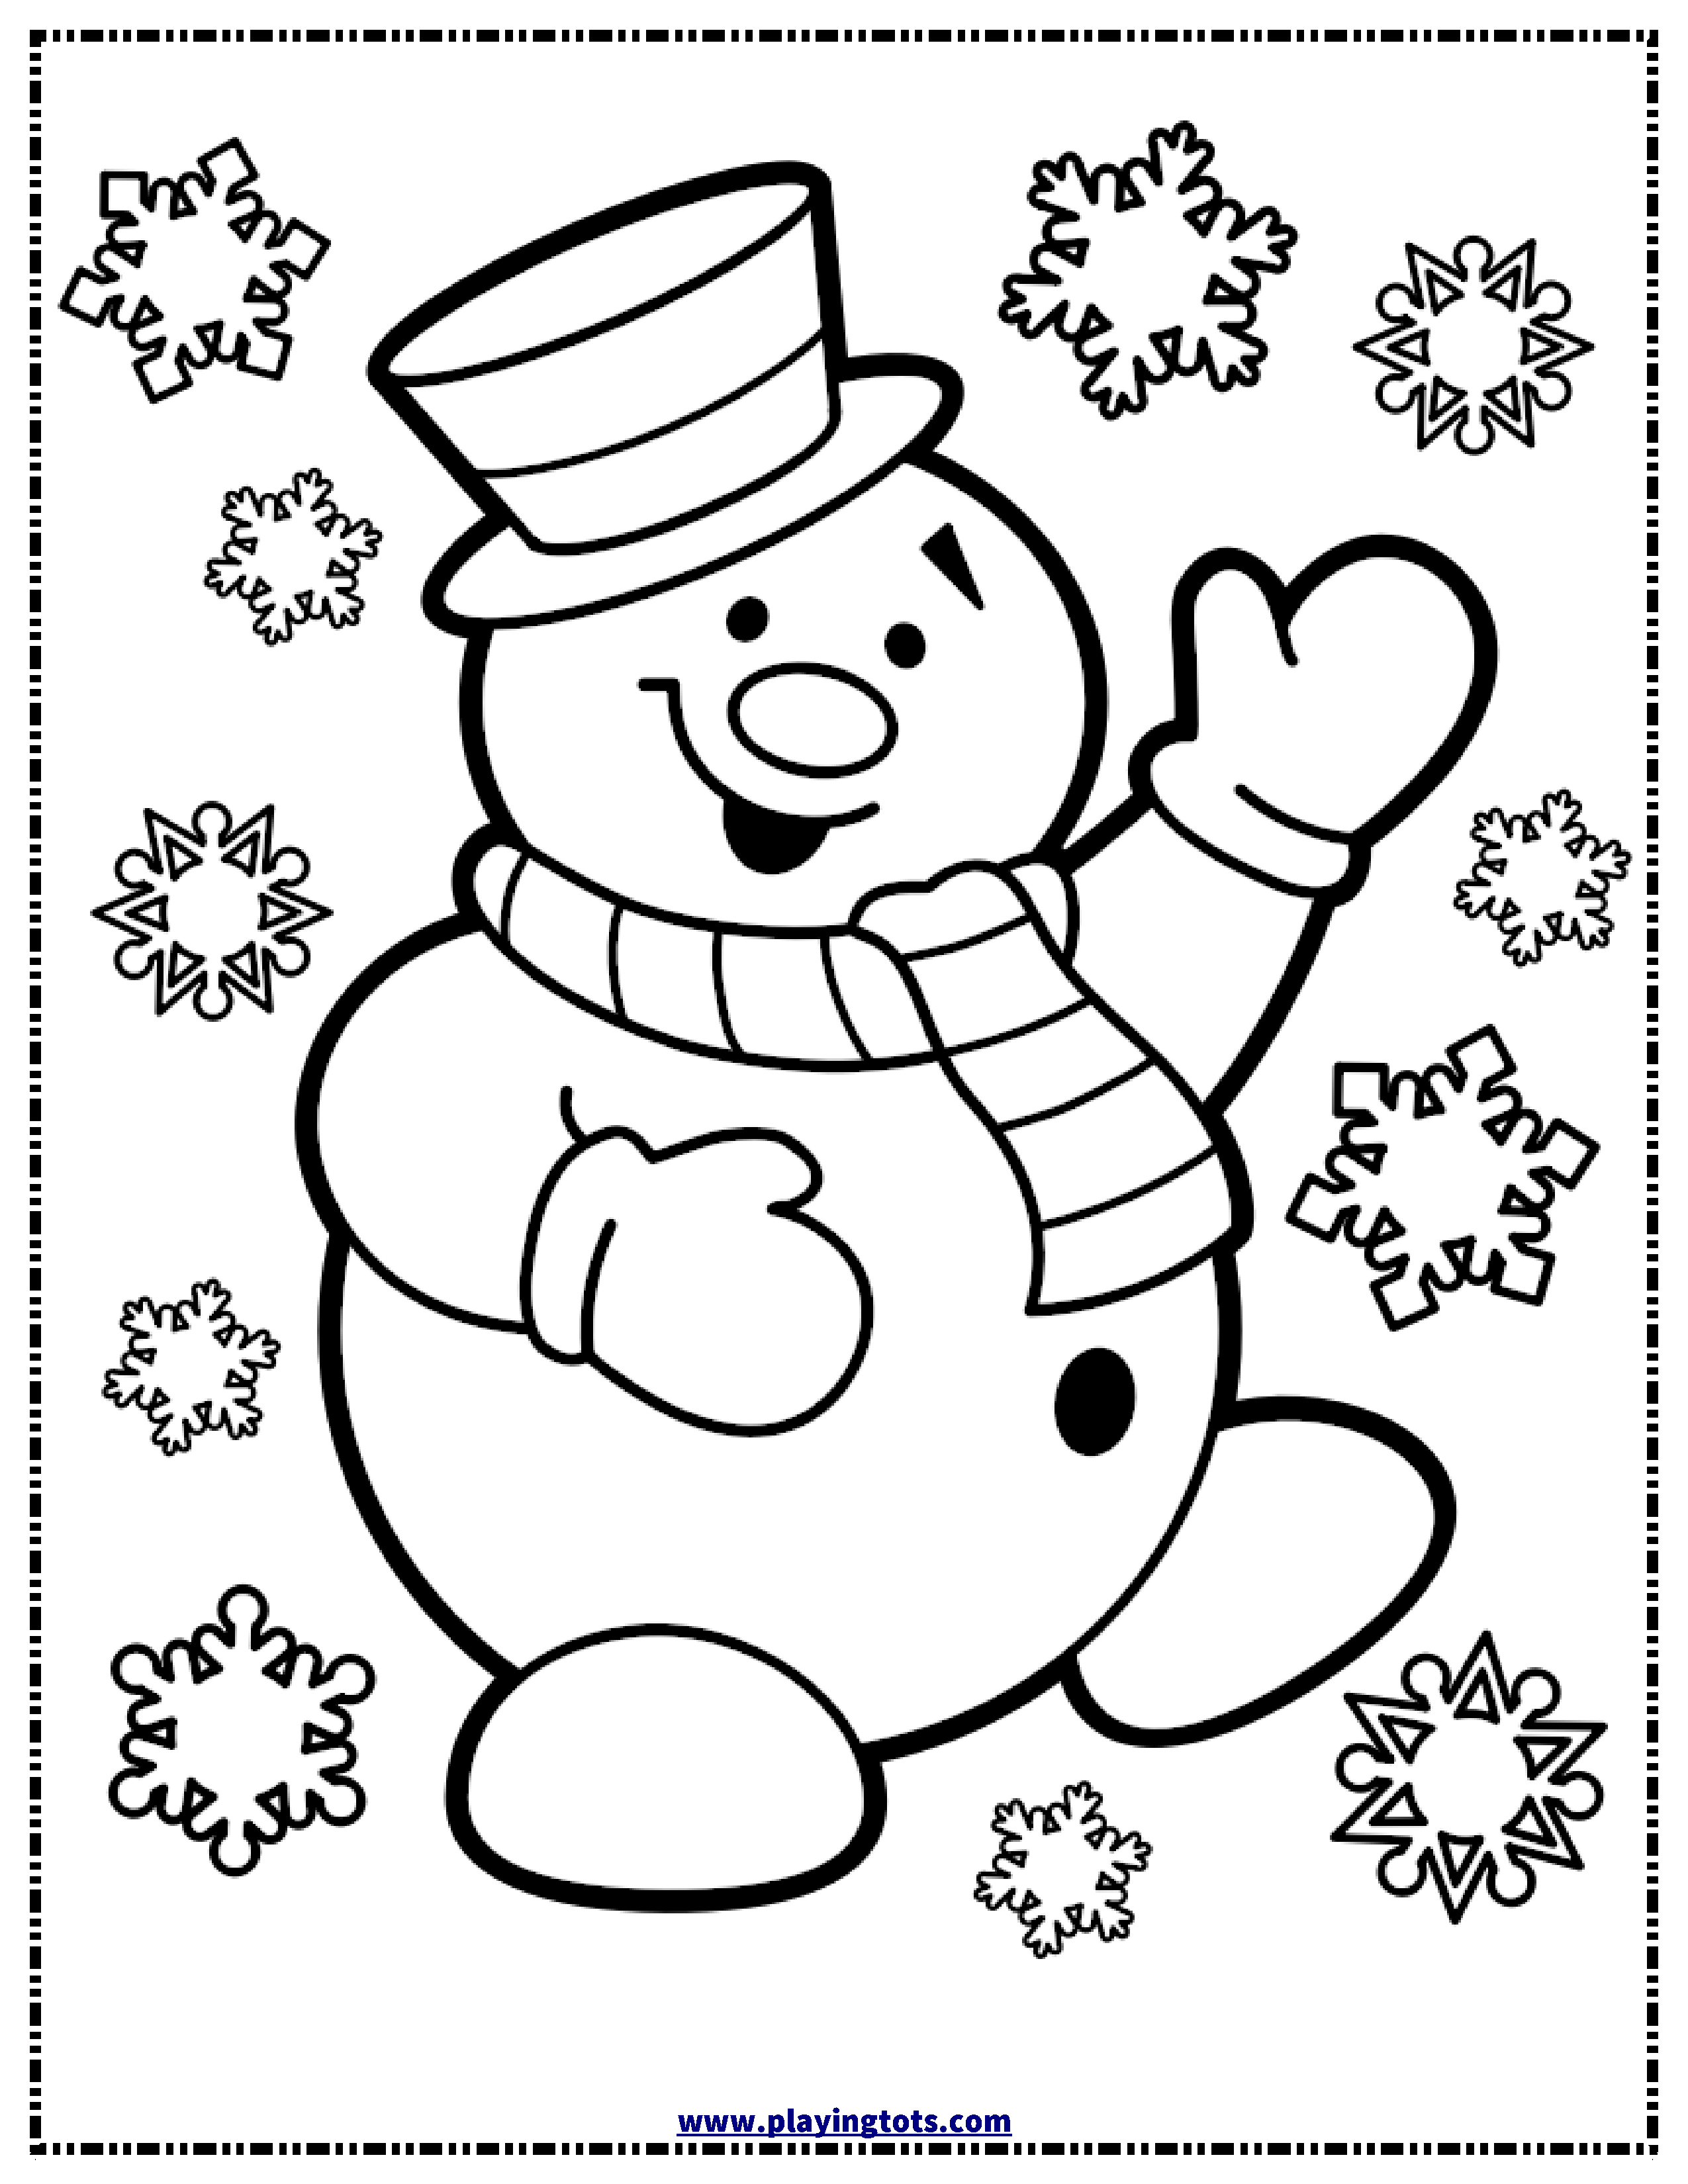 free christmas snowman coloring page | free printable for coloring